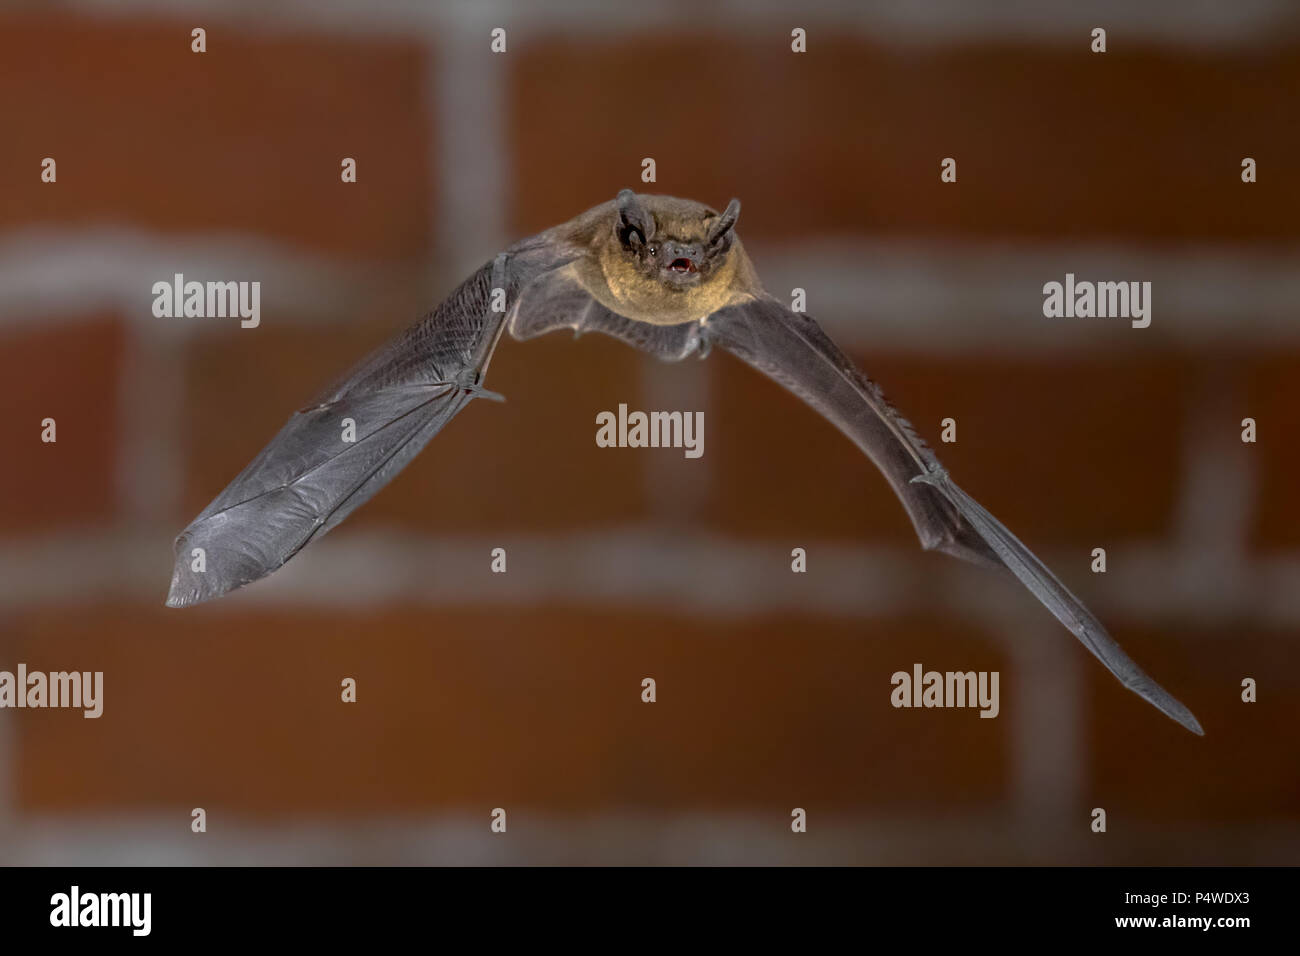 Nocturnal Pipistrelle bat (Pipistrellus pipistrellus) close up. Flying in urban setting with bricks in background in darkness at night - Stock Image